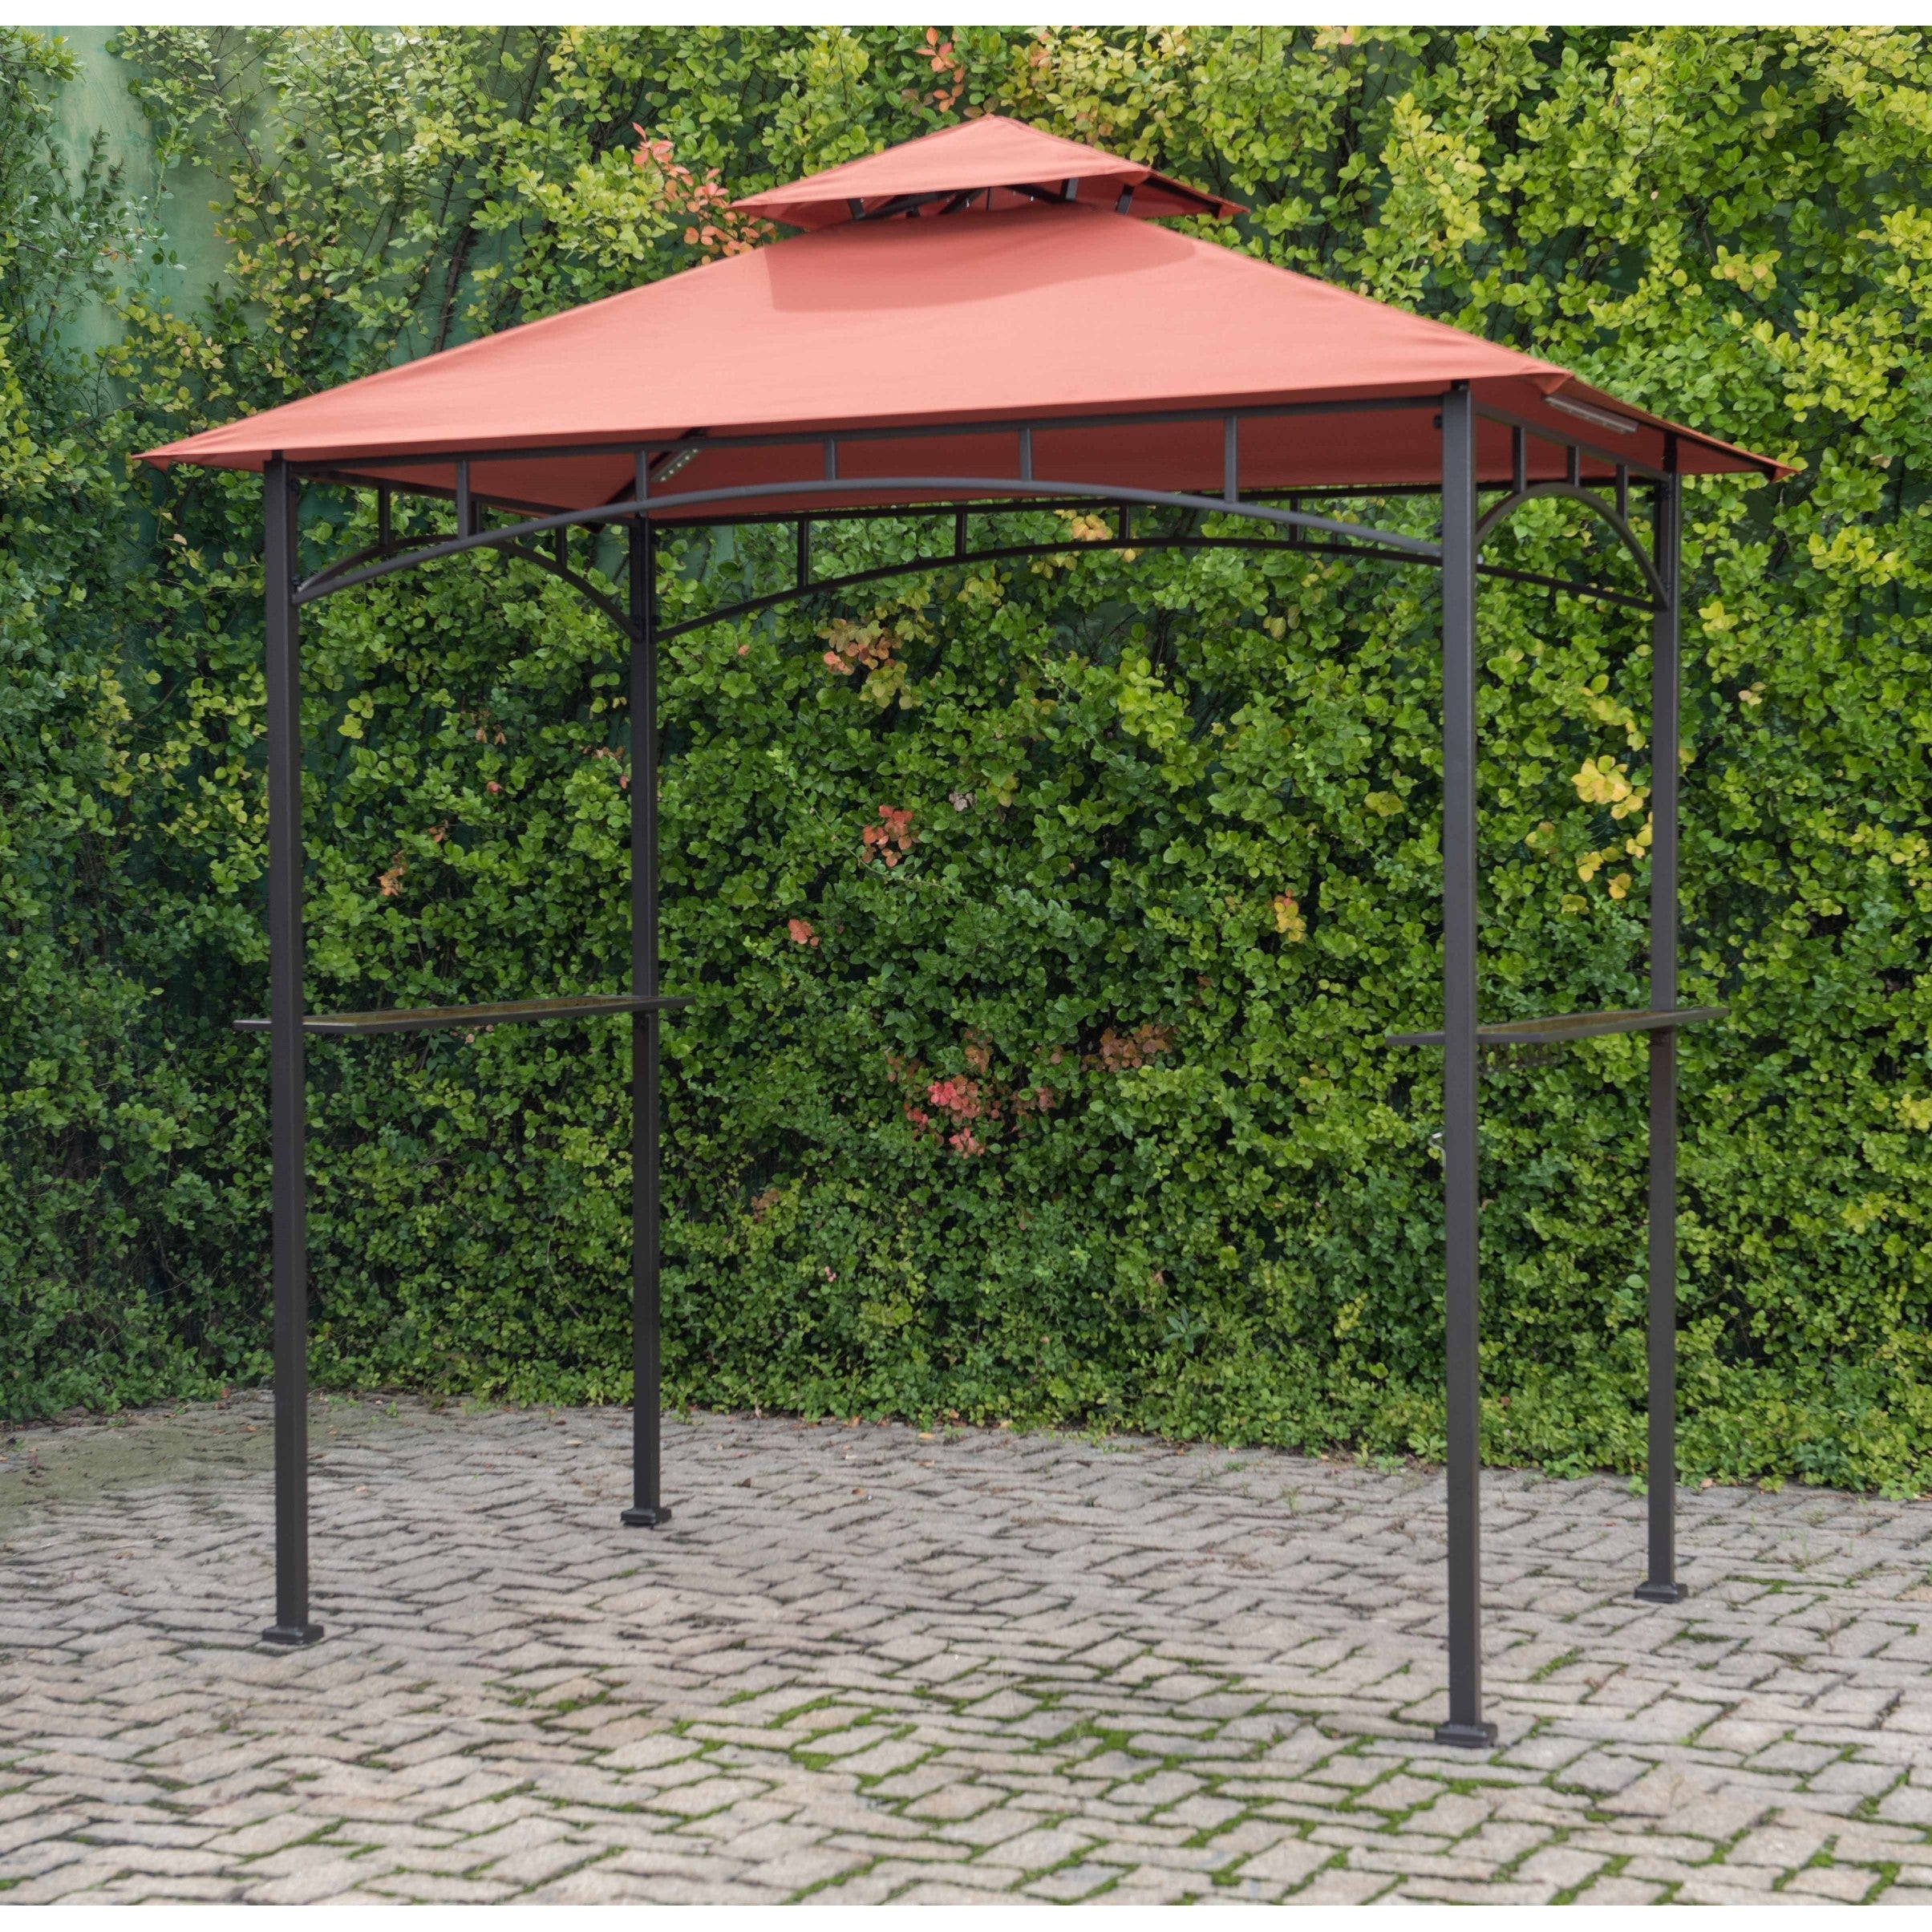 area your attractive bbq over gazebo showers with dp protection two shelter tables ecommerce by bar awning glass granite from give barbecue comes provides sturdy